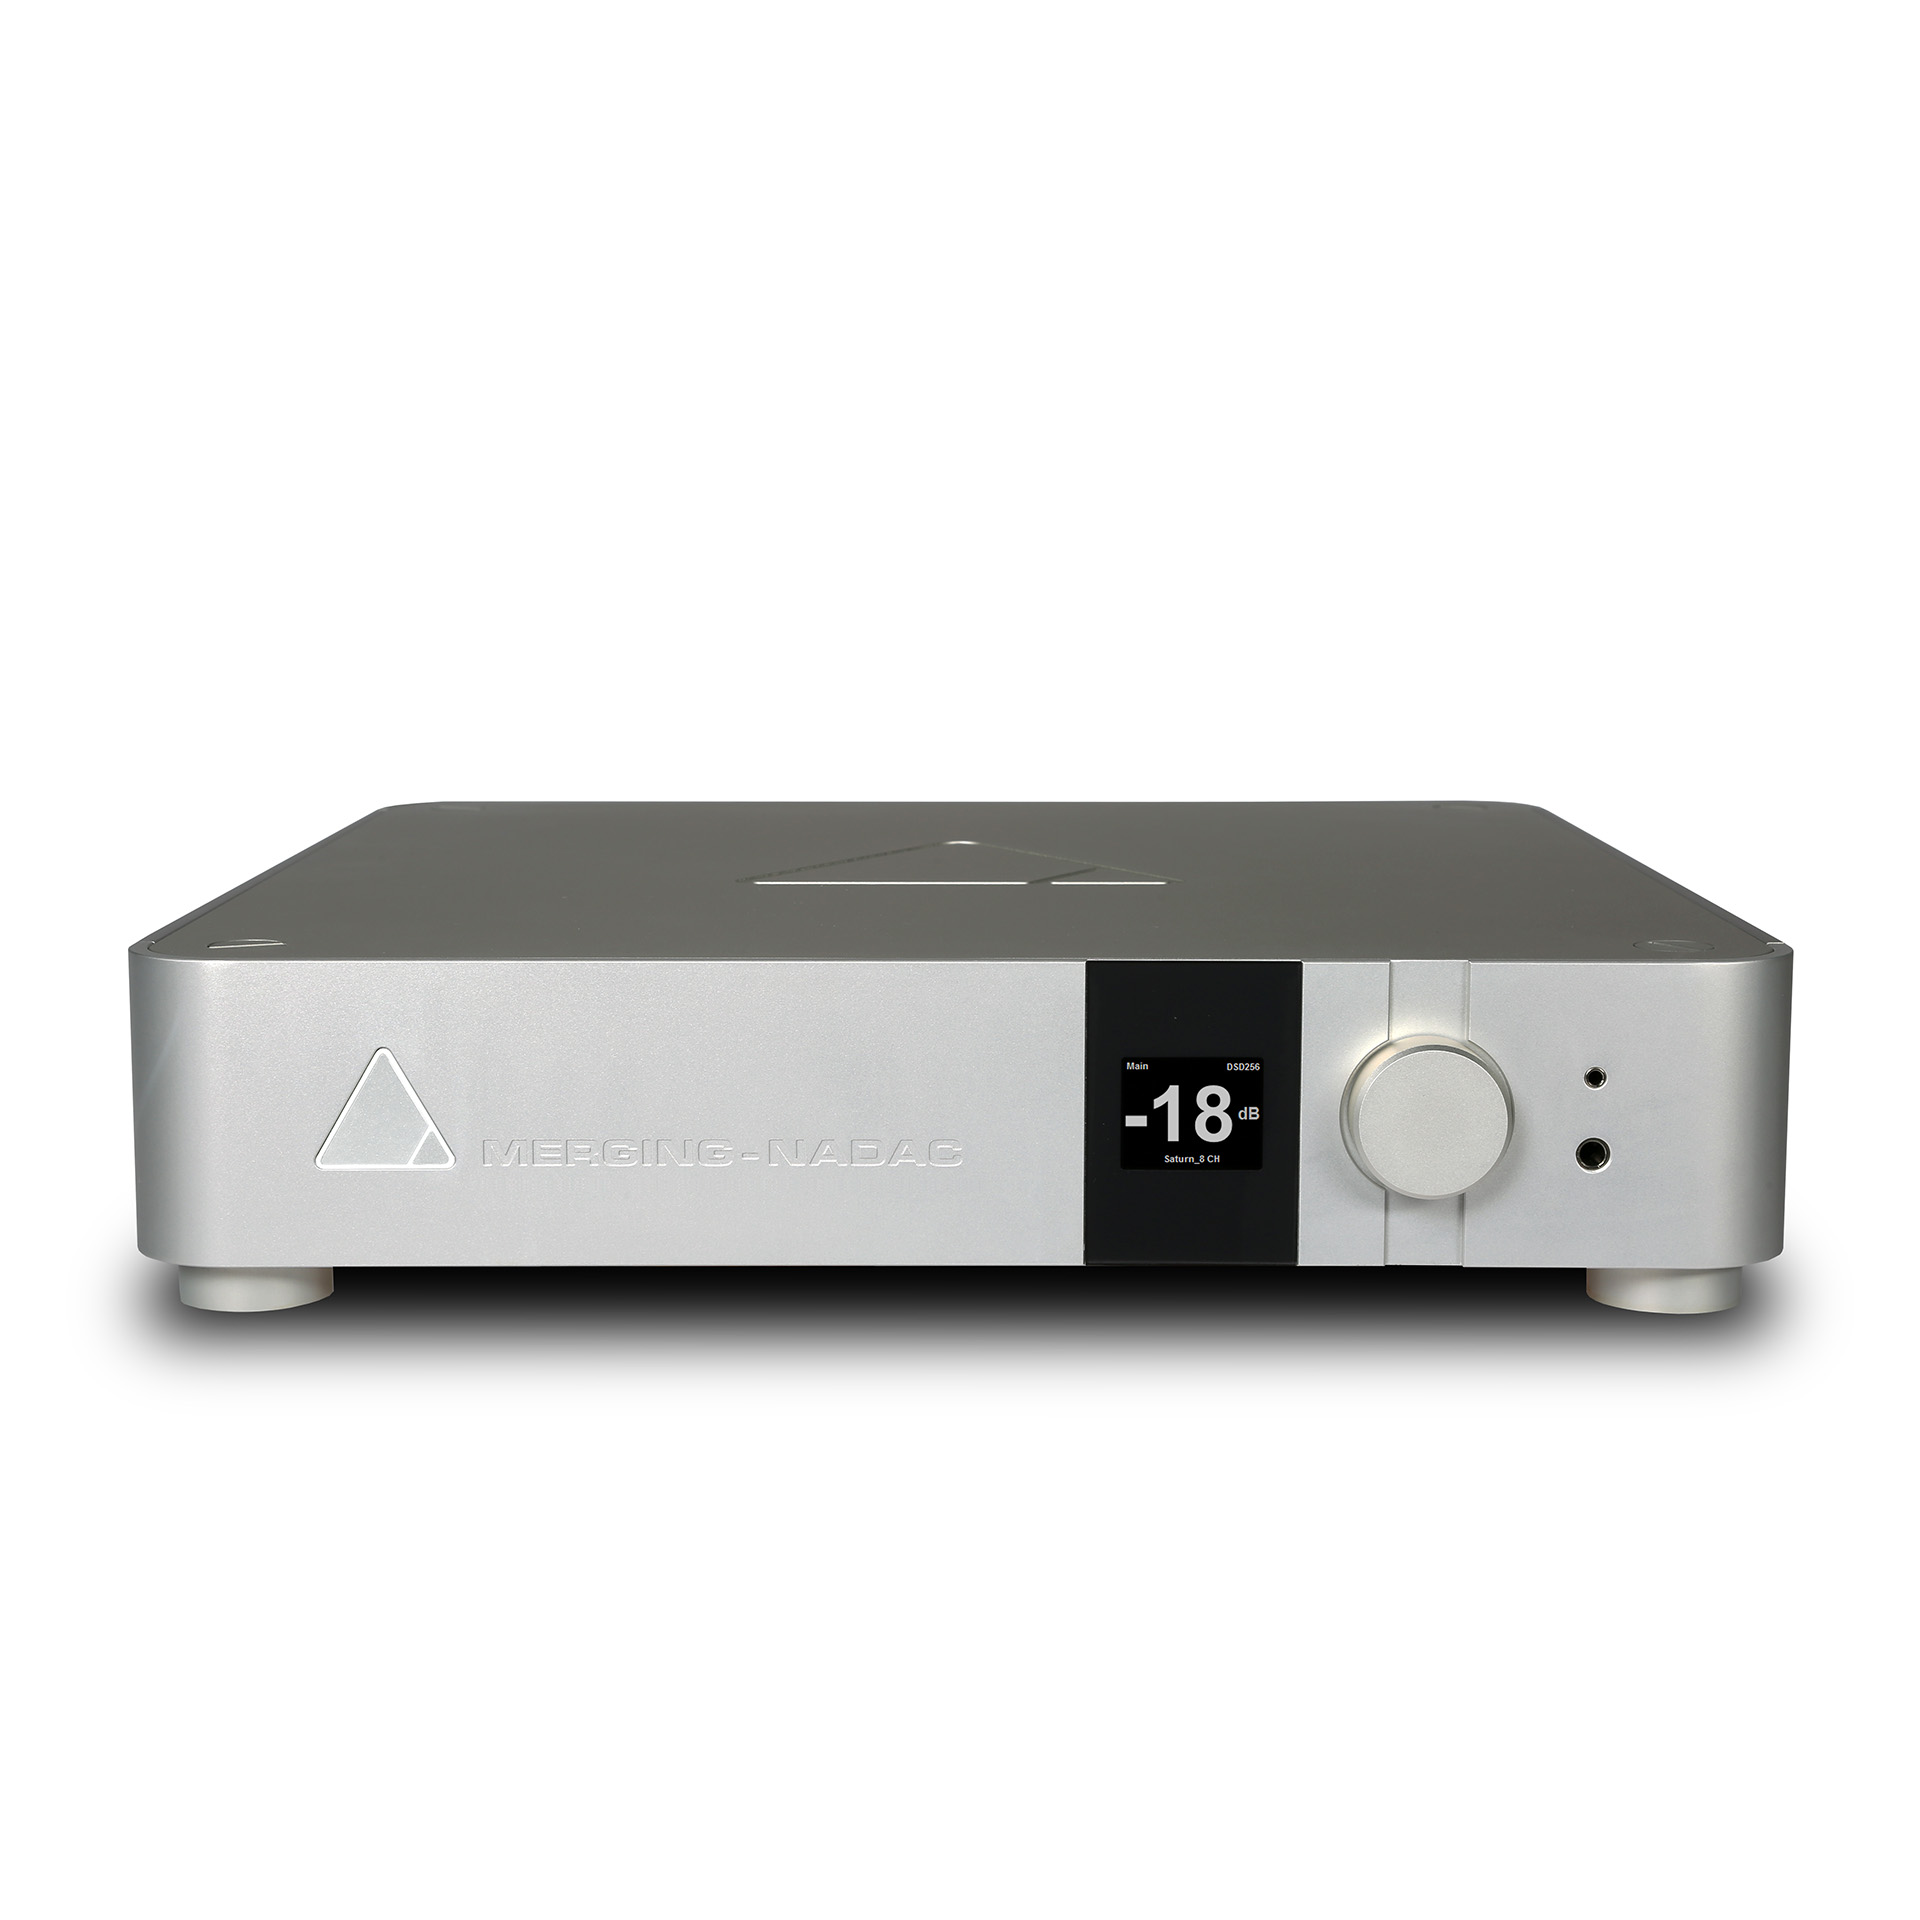 Merging Technologies NADAC - Chattelin Audio Systems